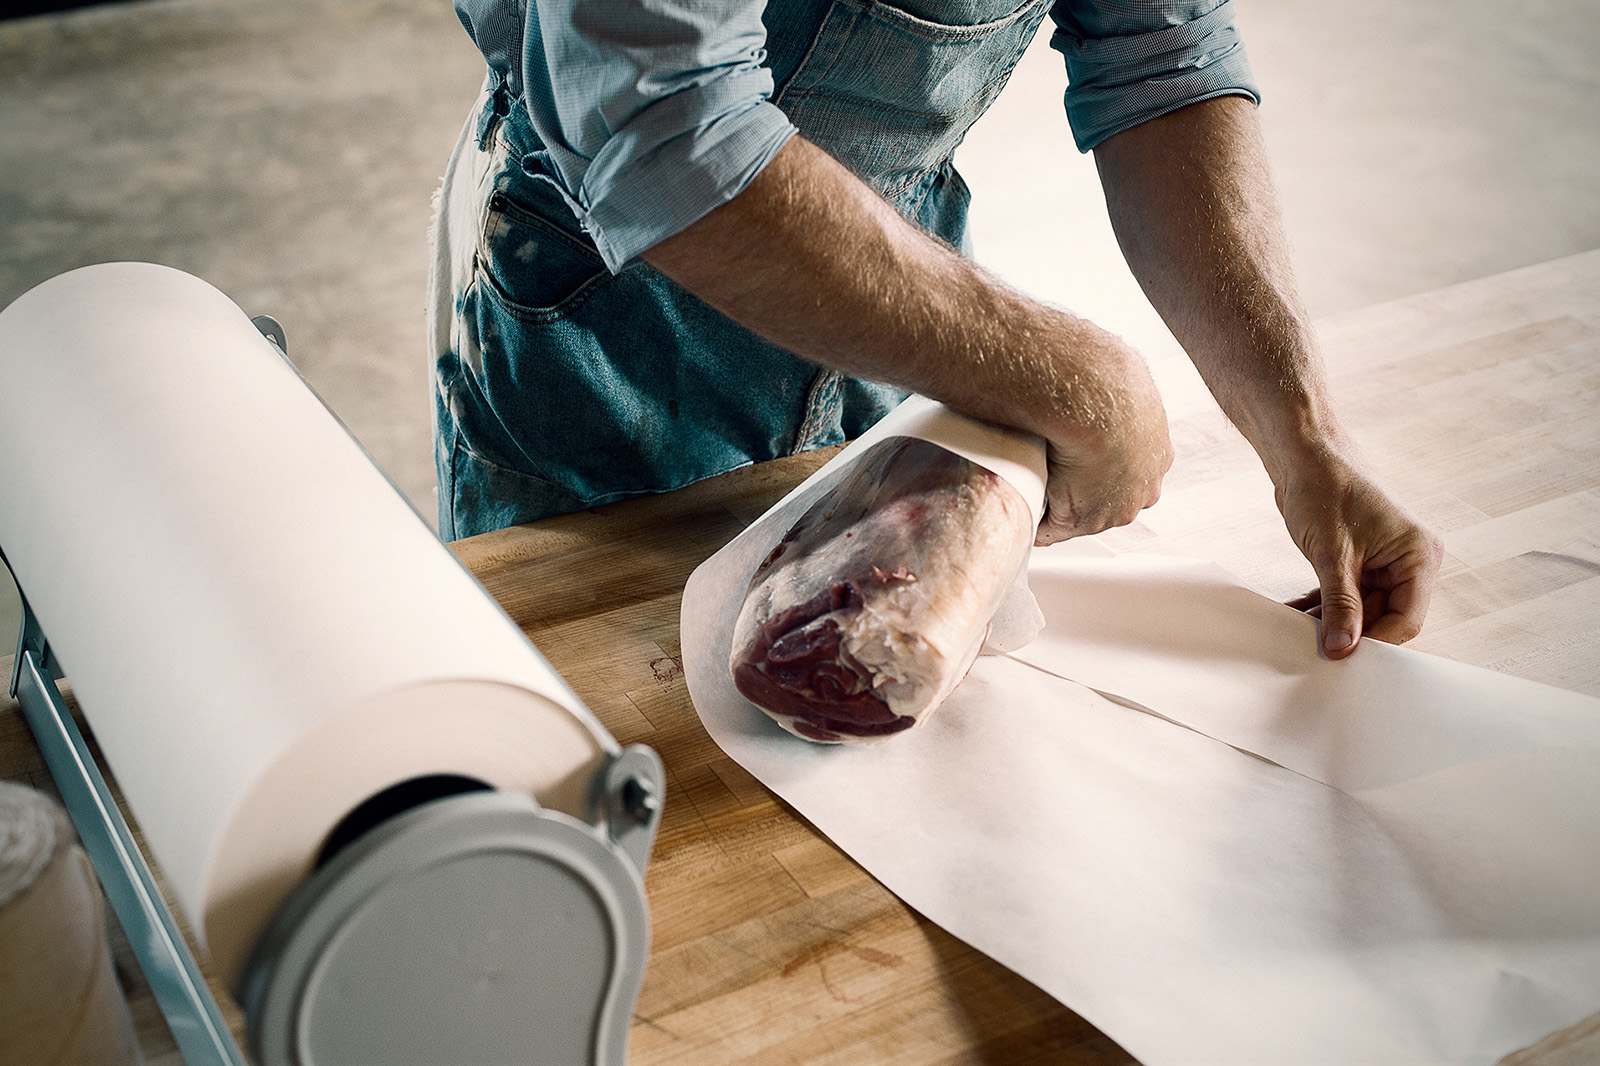 A cut of meat is being wrapped in butcher paper.